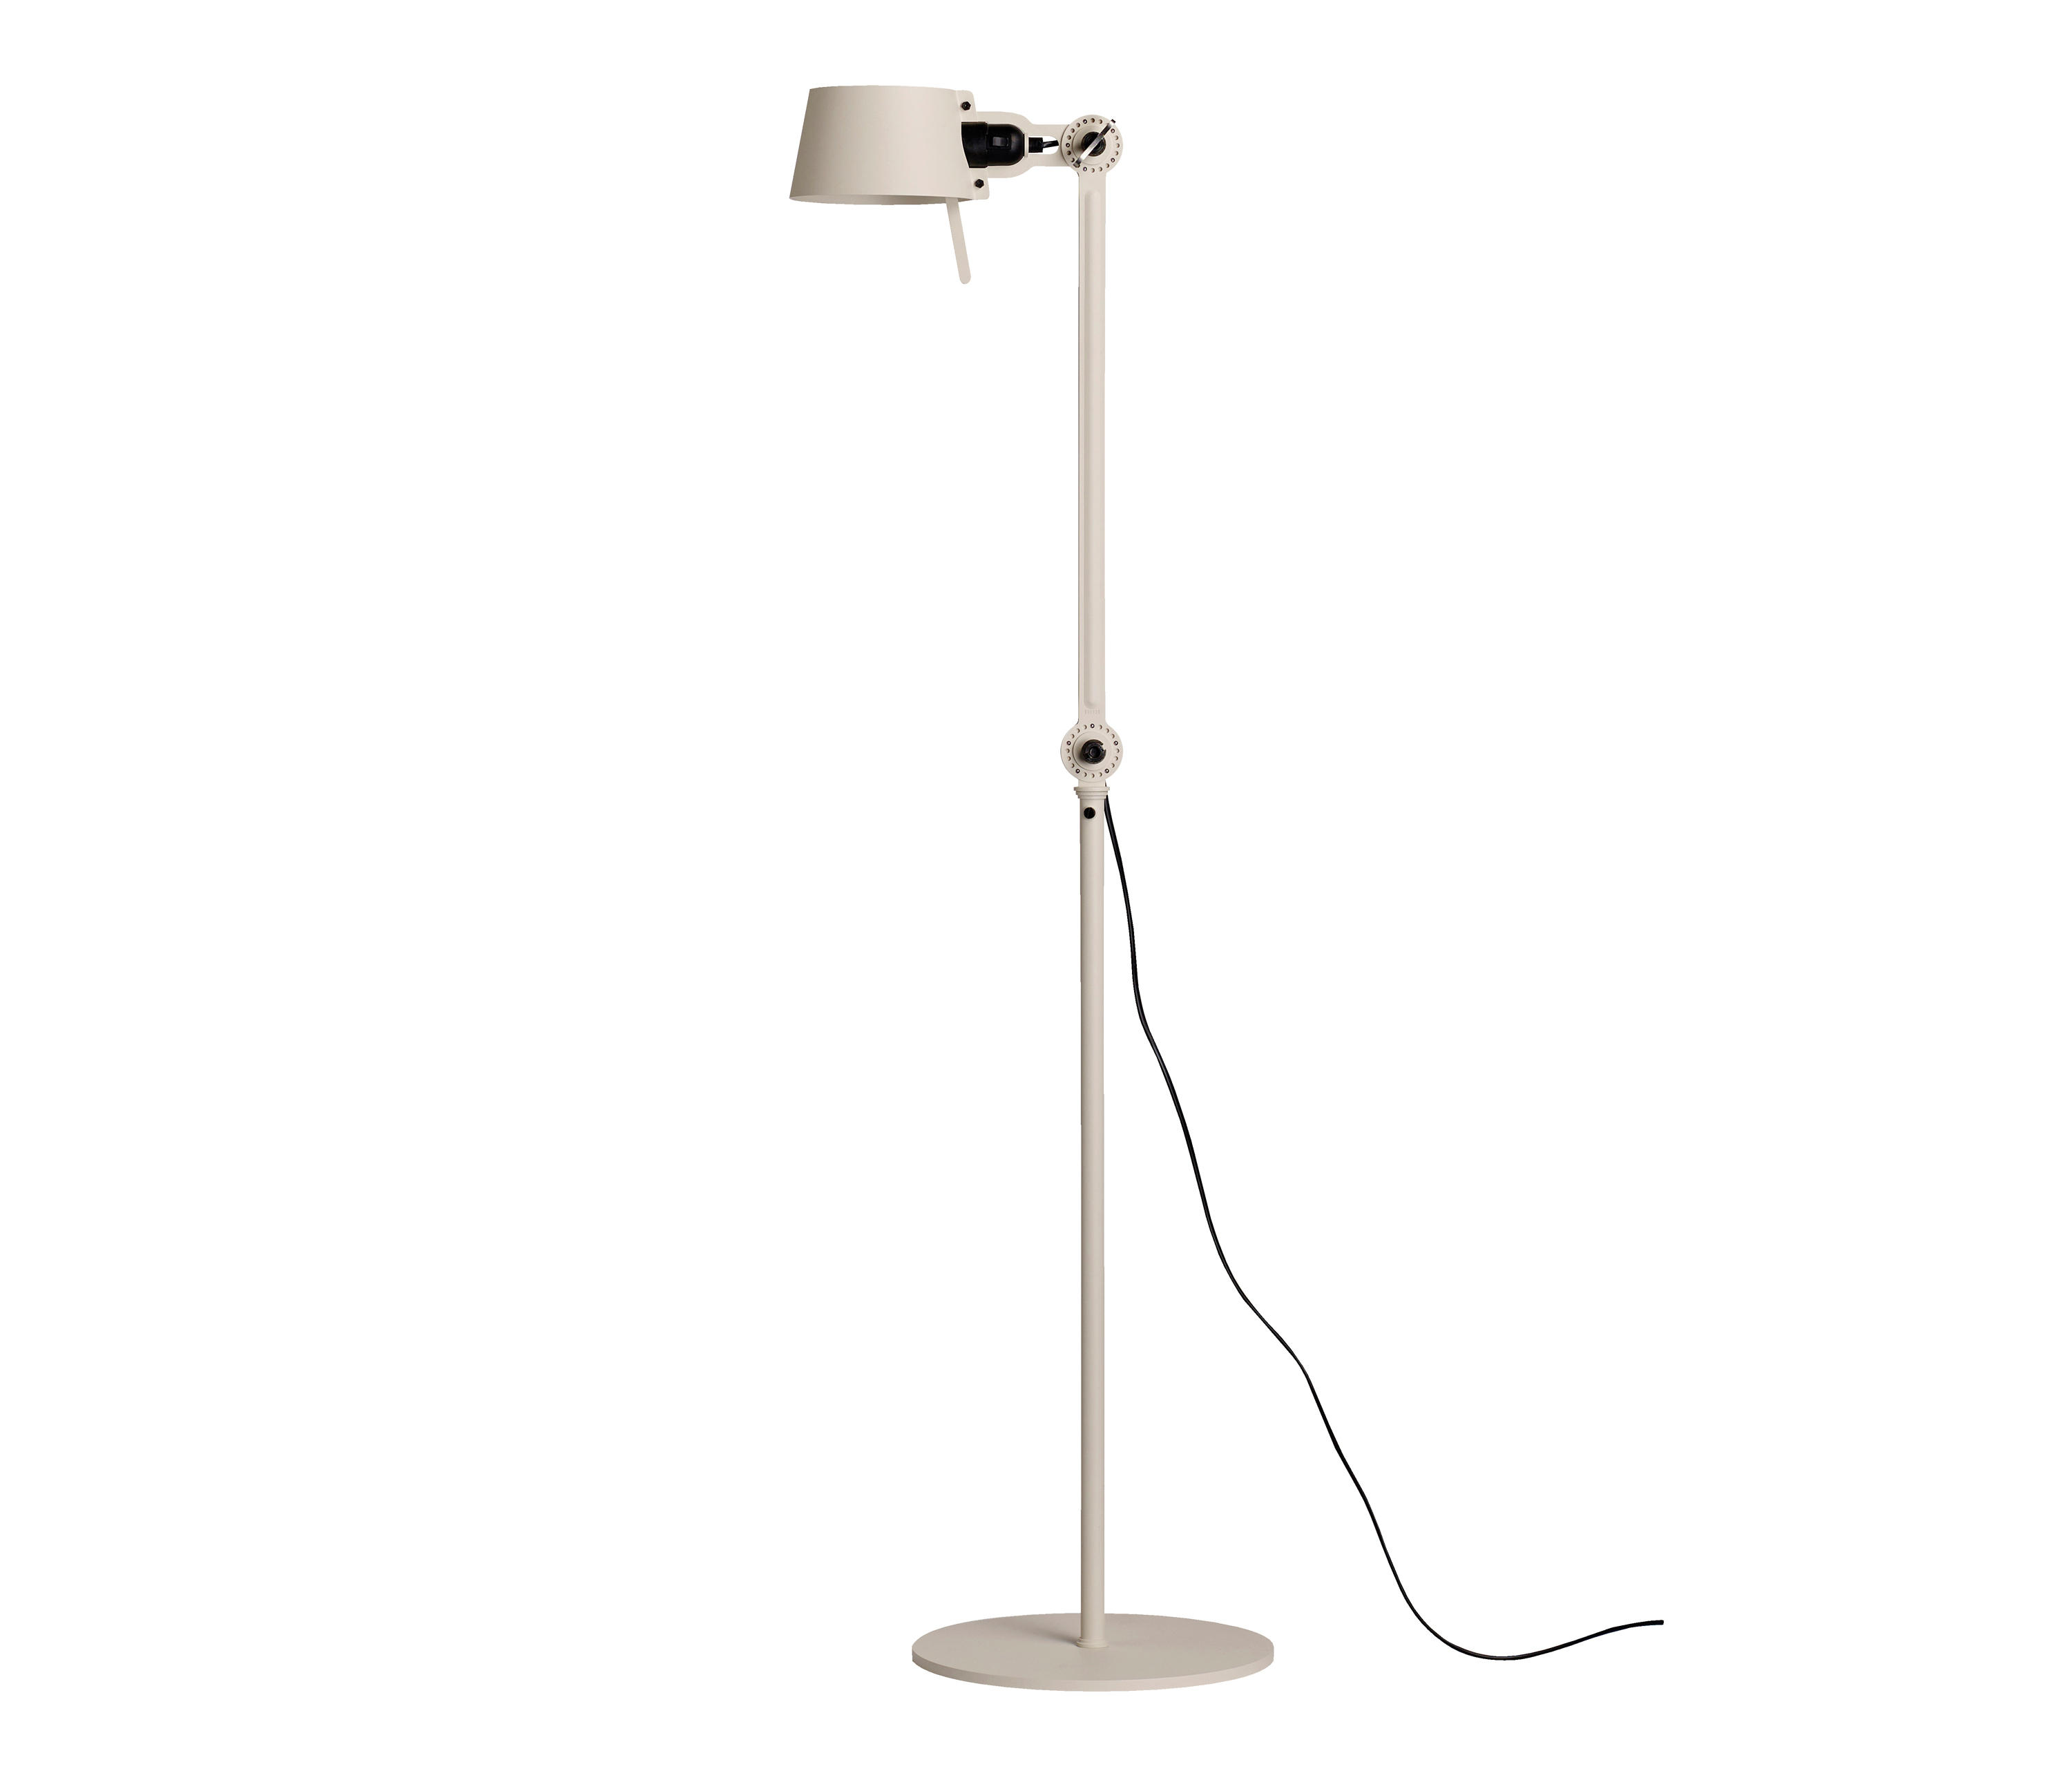 stand tar standard ideas full lighting by adjustable shade task table sale brown tall verellen s for bronze bolzano lamps lights inspirational lamp best unique size of arc dining large verilux metal and floor